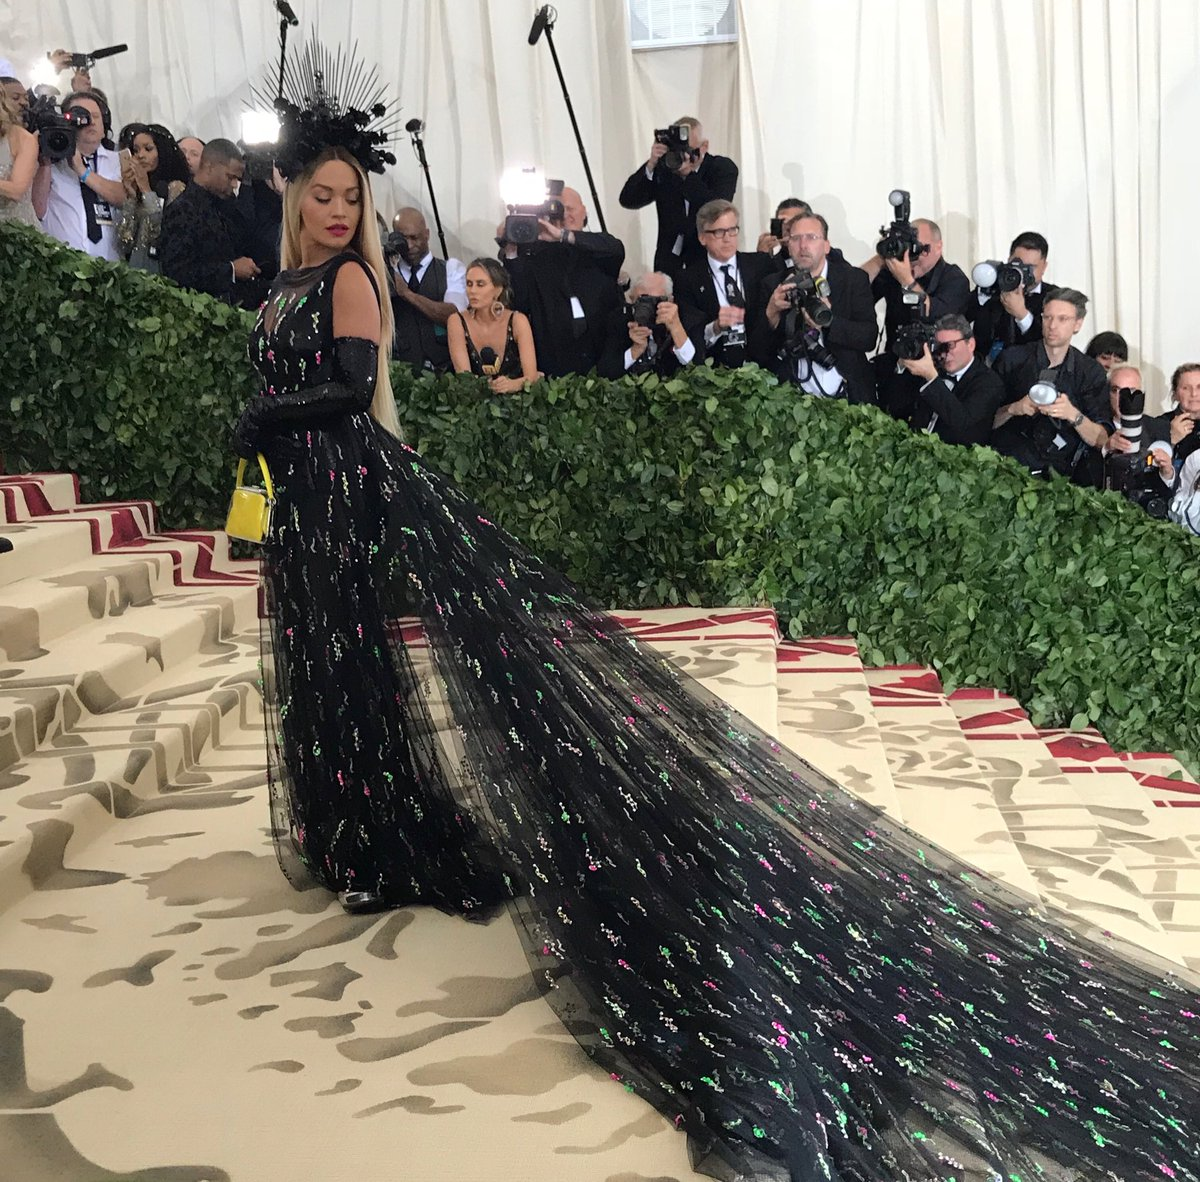 RT @metmuseum: Actress and singer Rita Ora looks exceptional on the #MetGala red carpet. @RitaOra #RitaOra https://t.co/vqUiQMYe0q